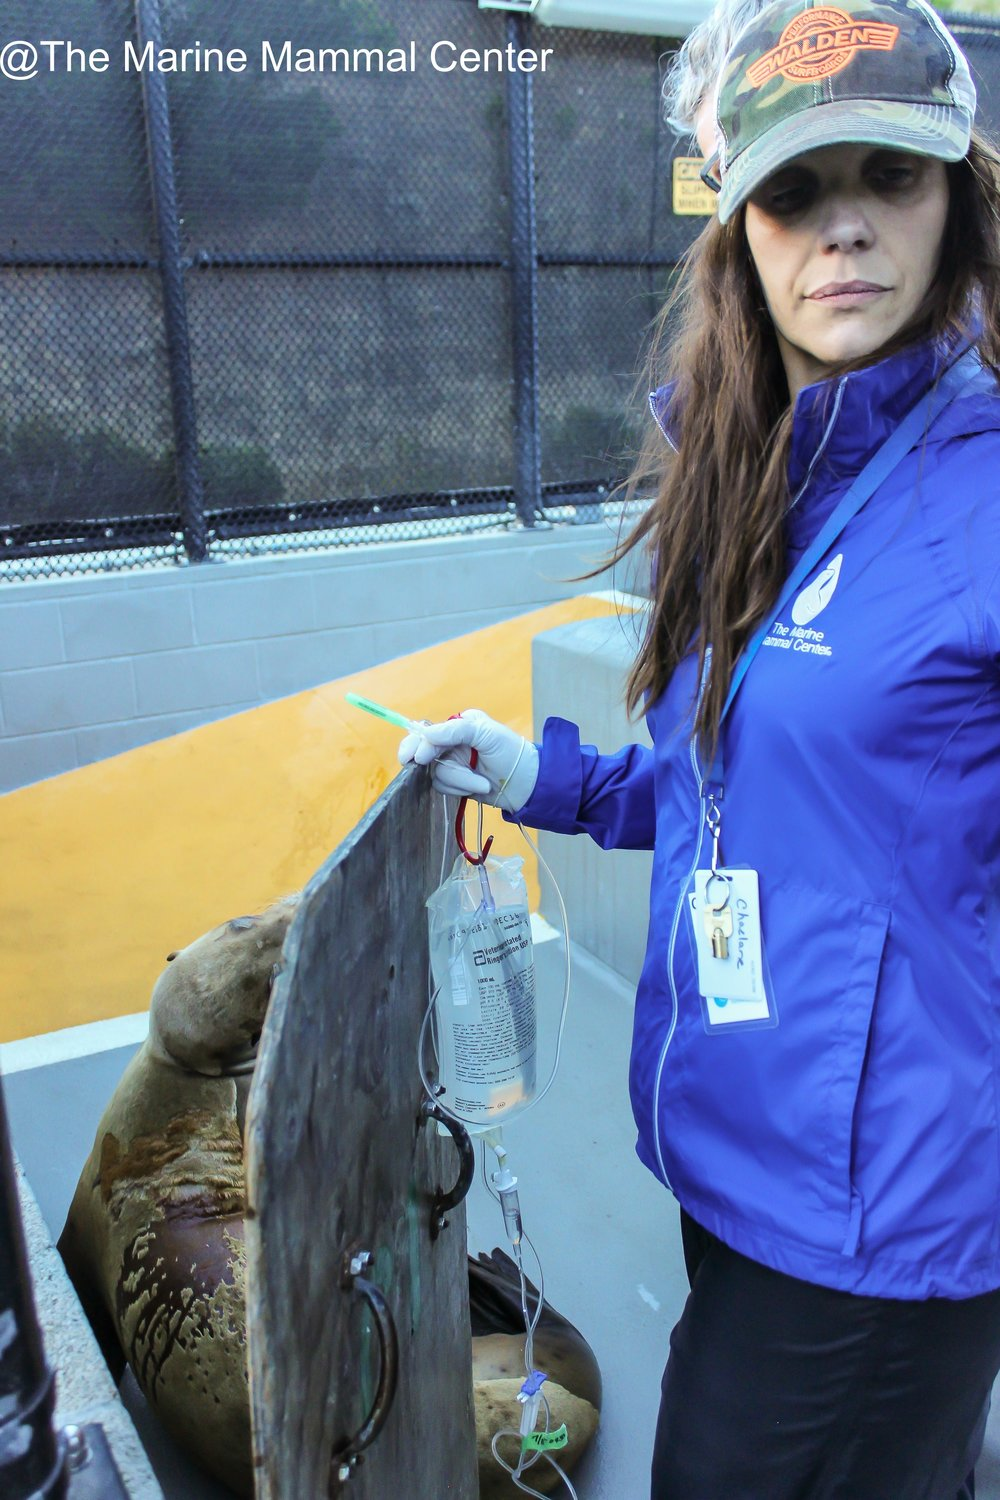 mncts-photo--the-marine-mammal-center-24_28805499400_o.jpg